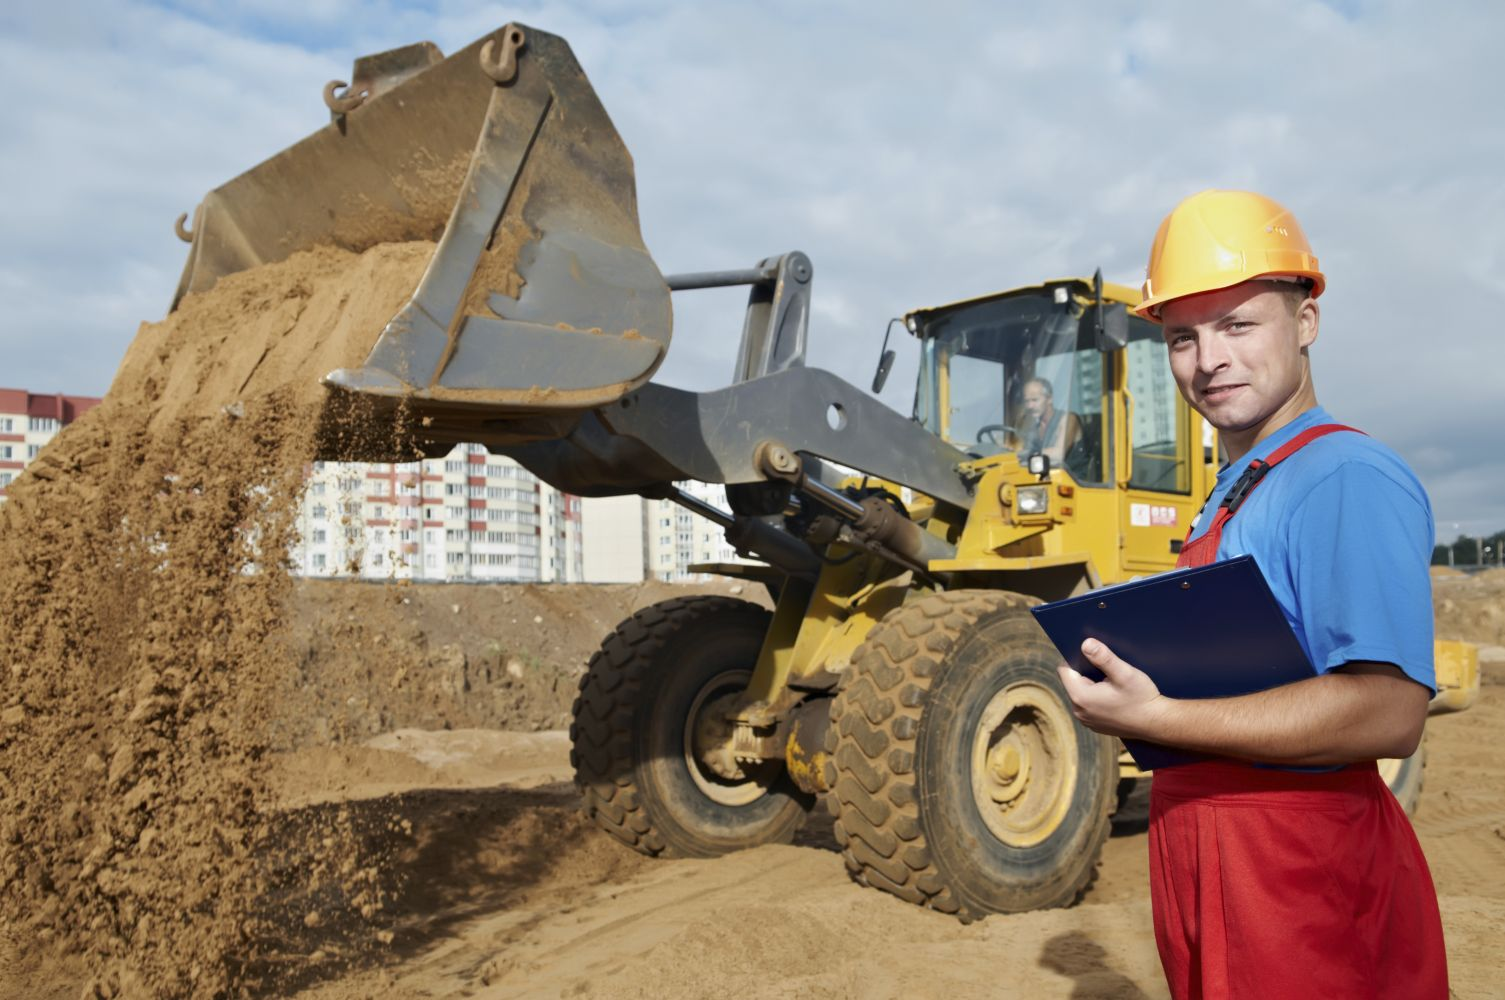 One of the contractors of our excavation company in Anchorage, AK